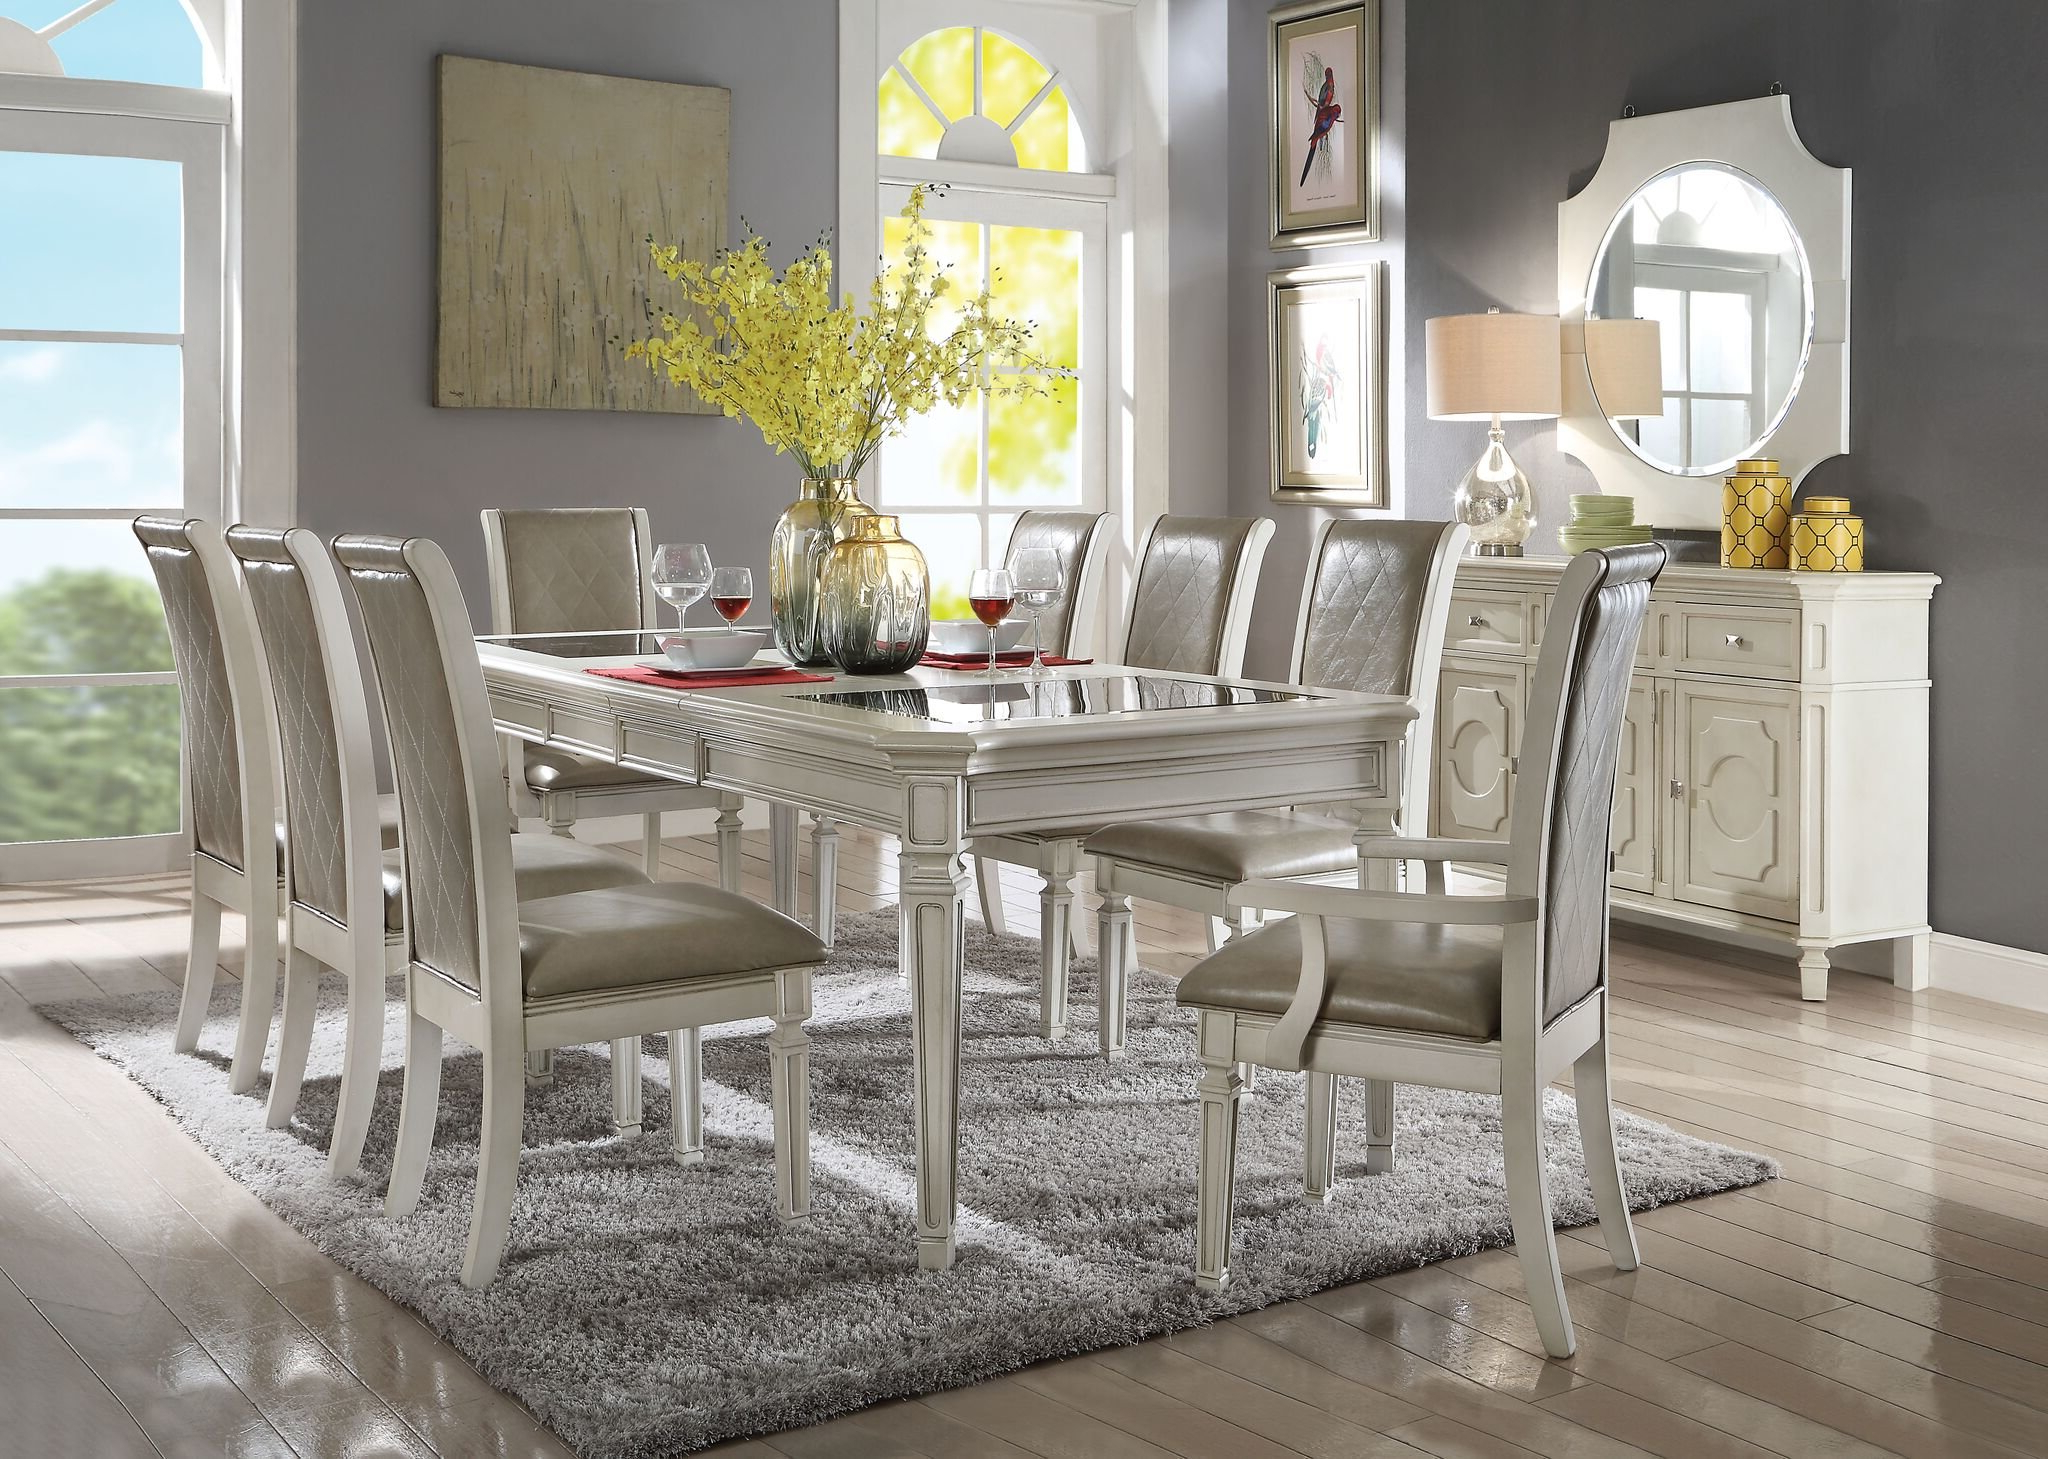 Lamotte Upholstered Dining Chair Throughout Well Known Lamotte 5 Piece Dining Sets (Gallery 16 of 20)